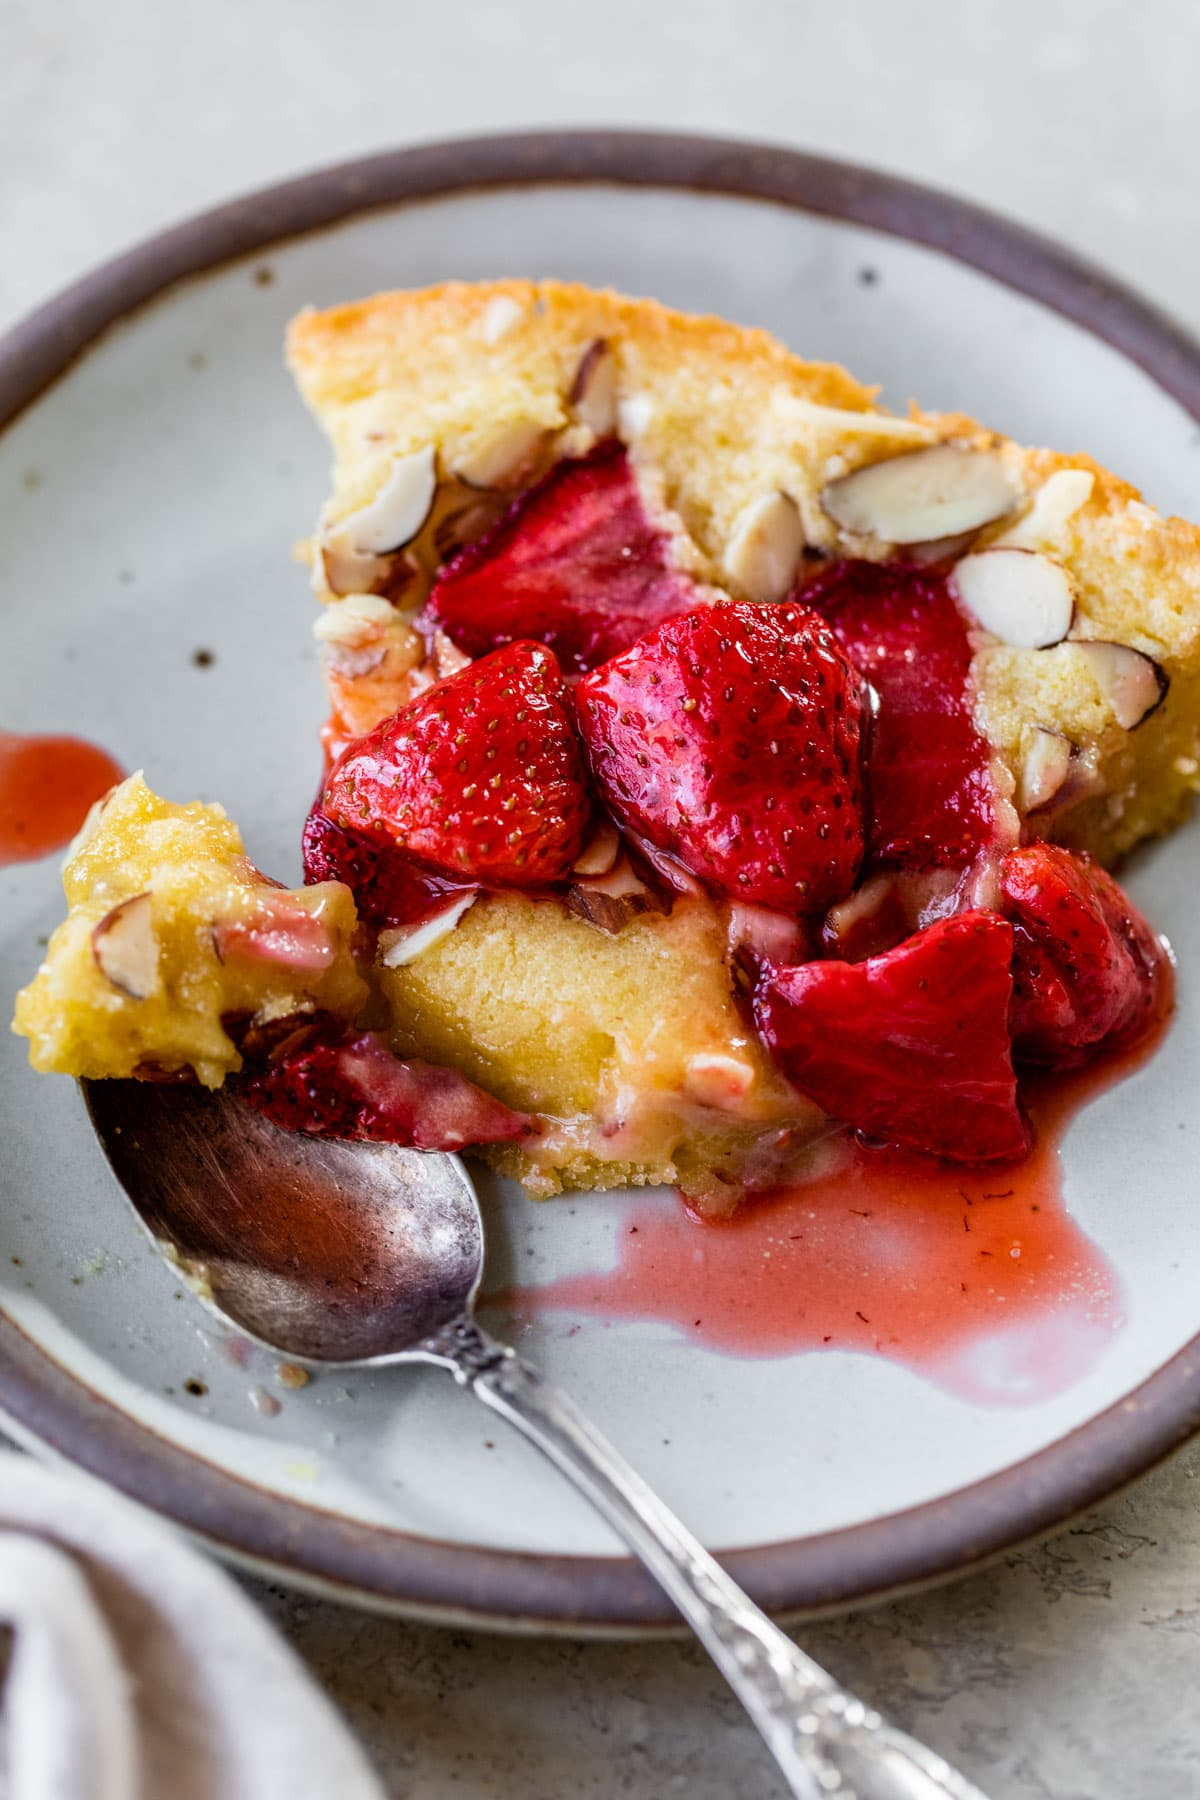 Strawberry Almond Skillet Cake. Super moist almond cake baked in a skillet and topped with roasted strawberries.